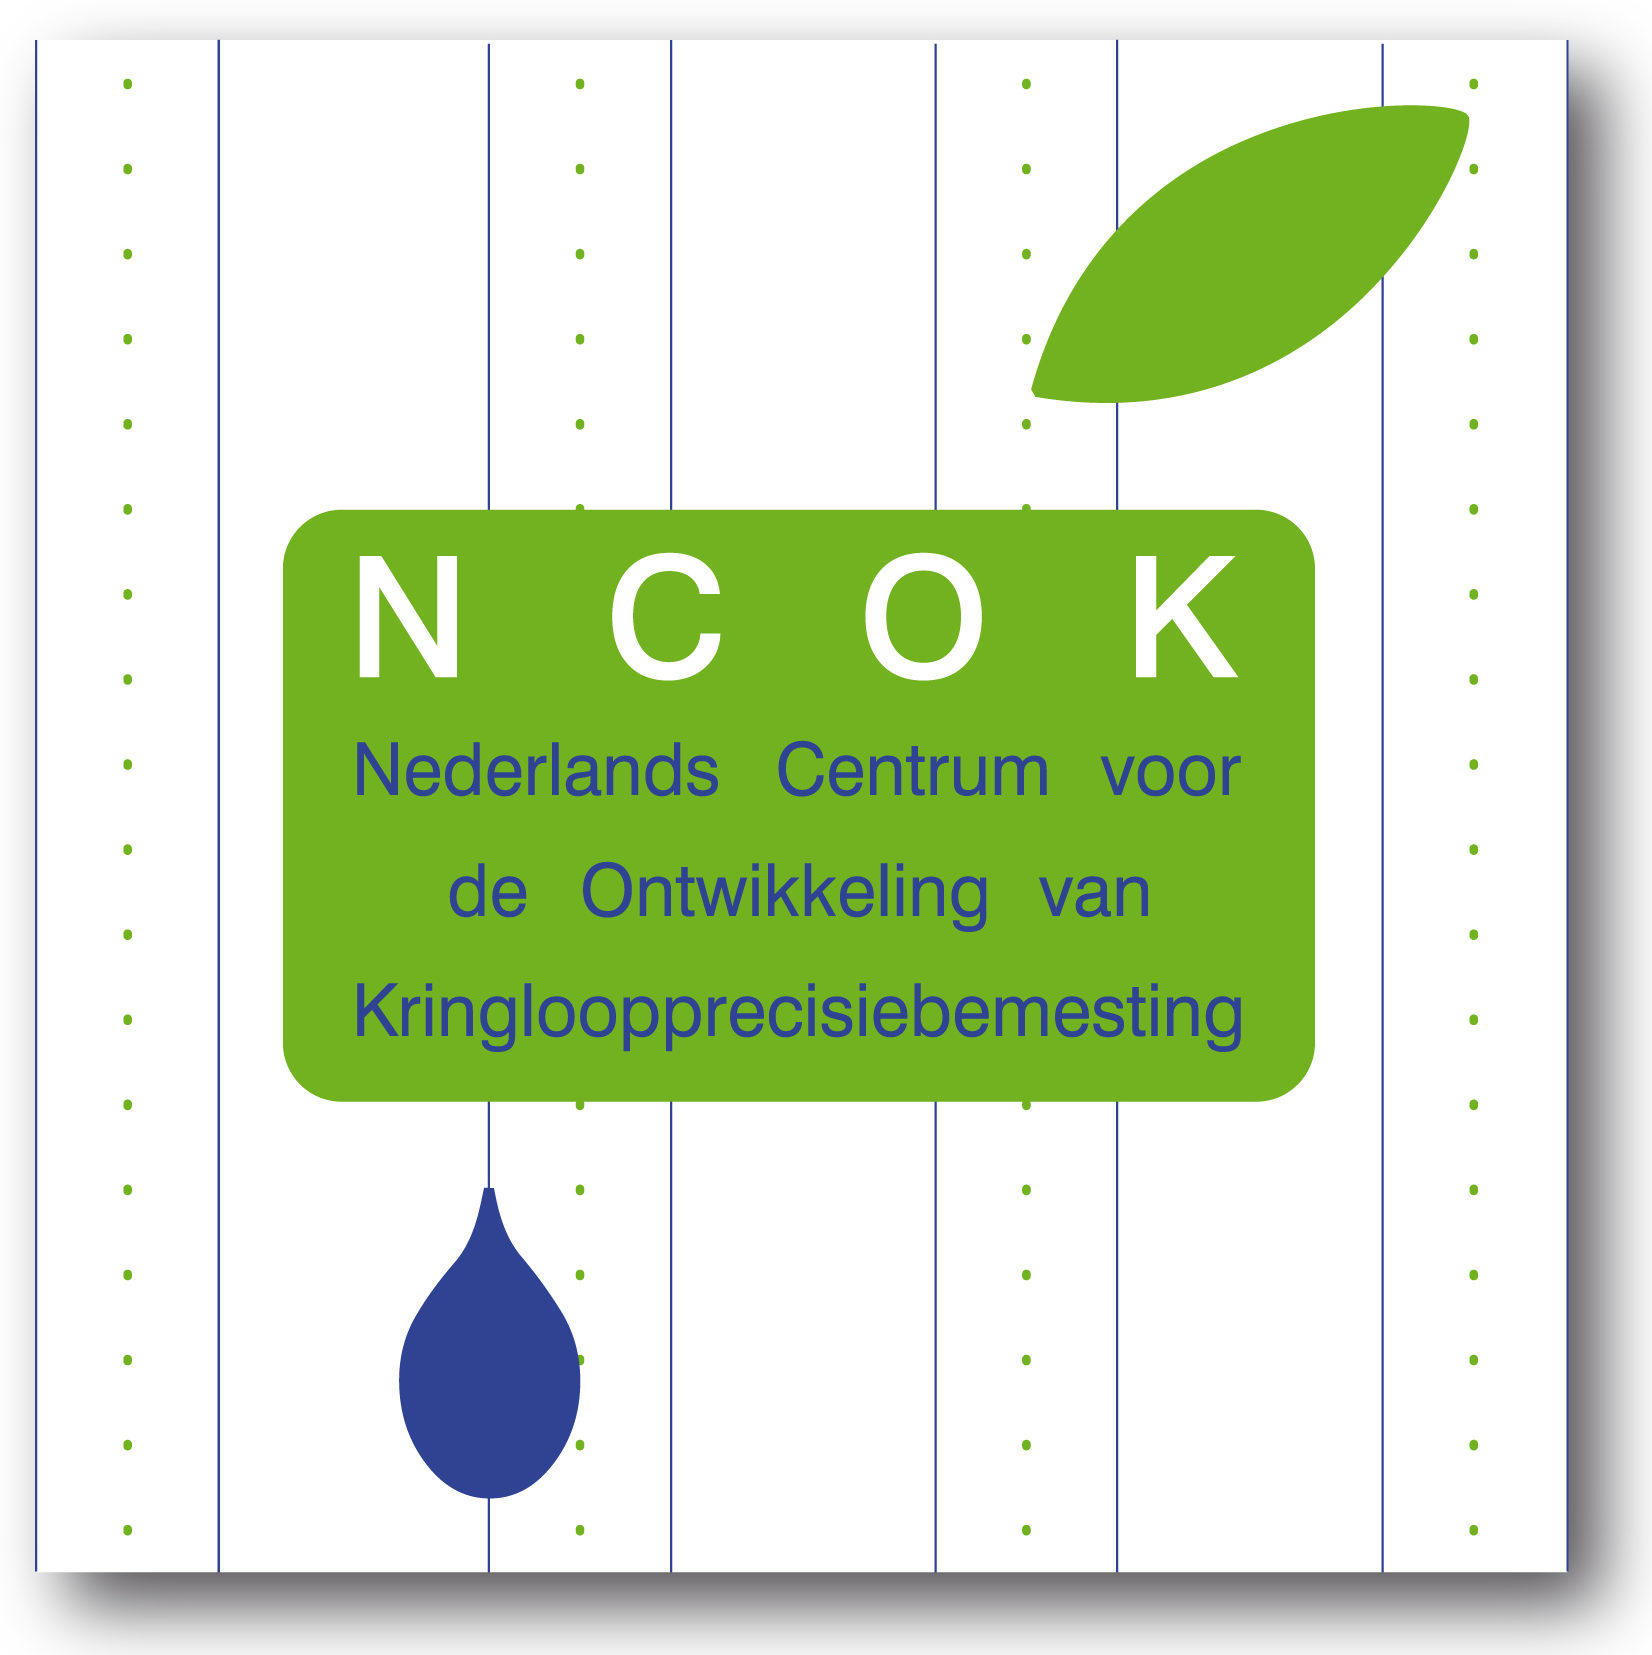 NCOK